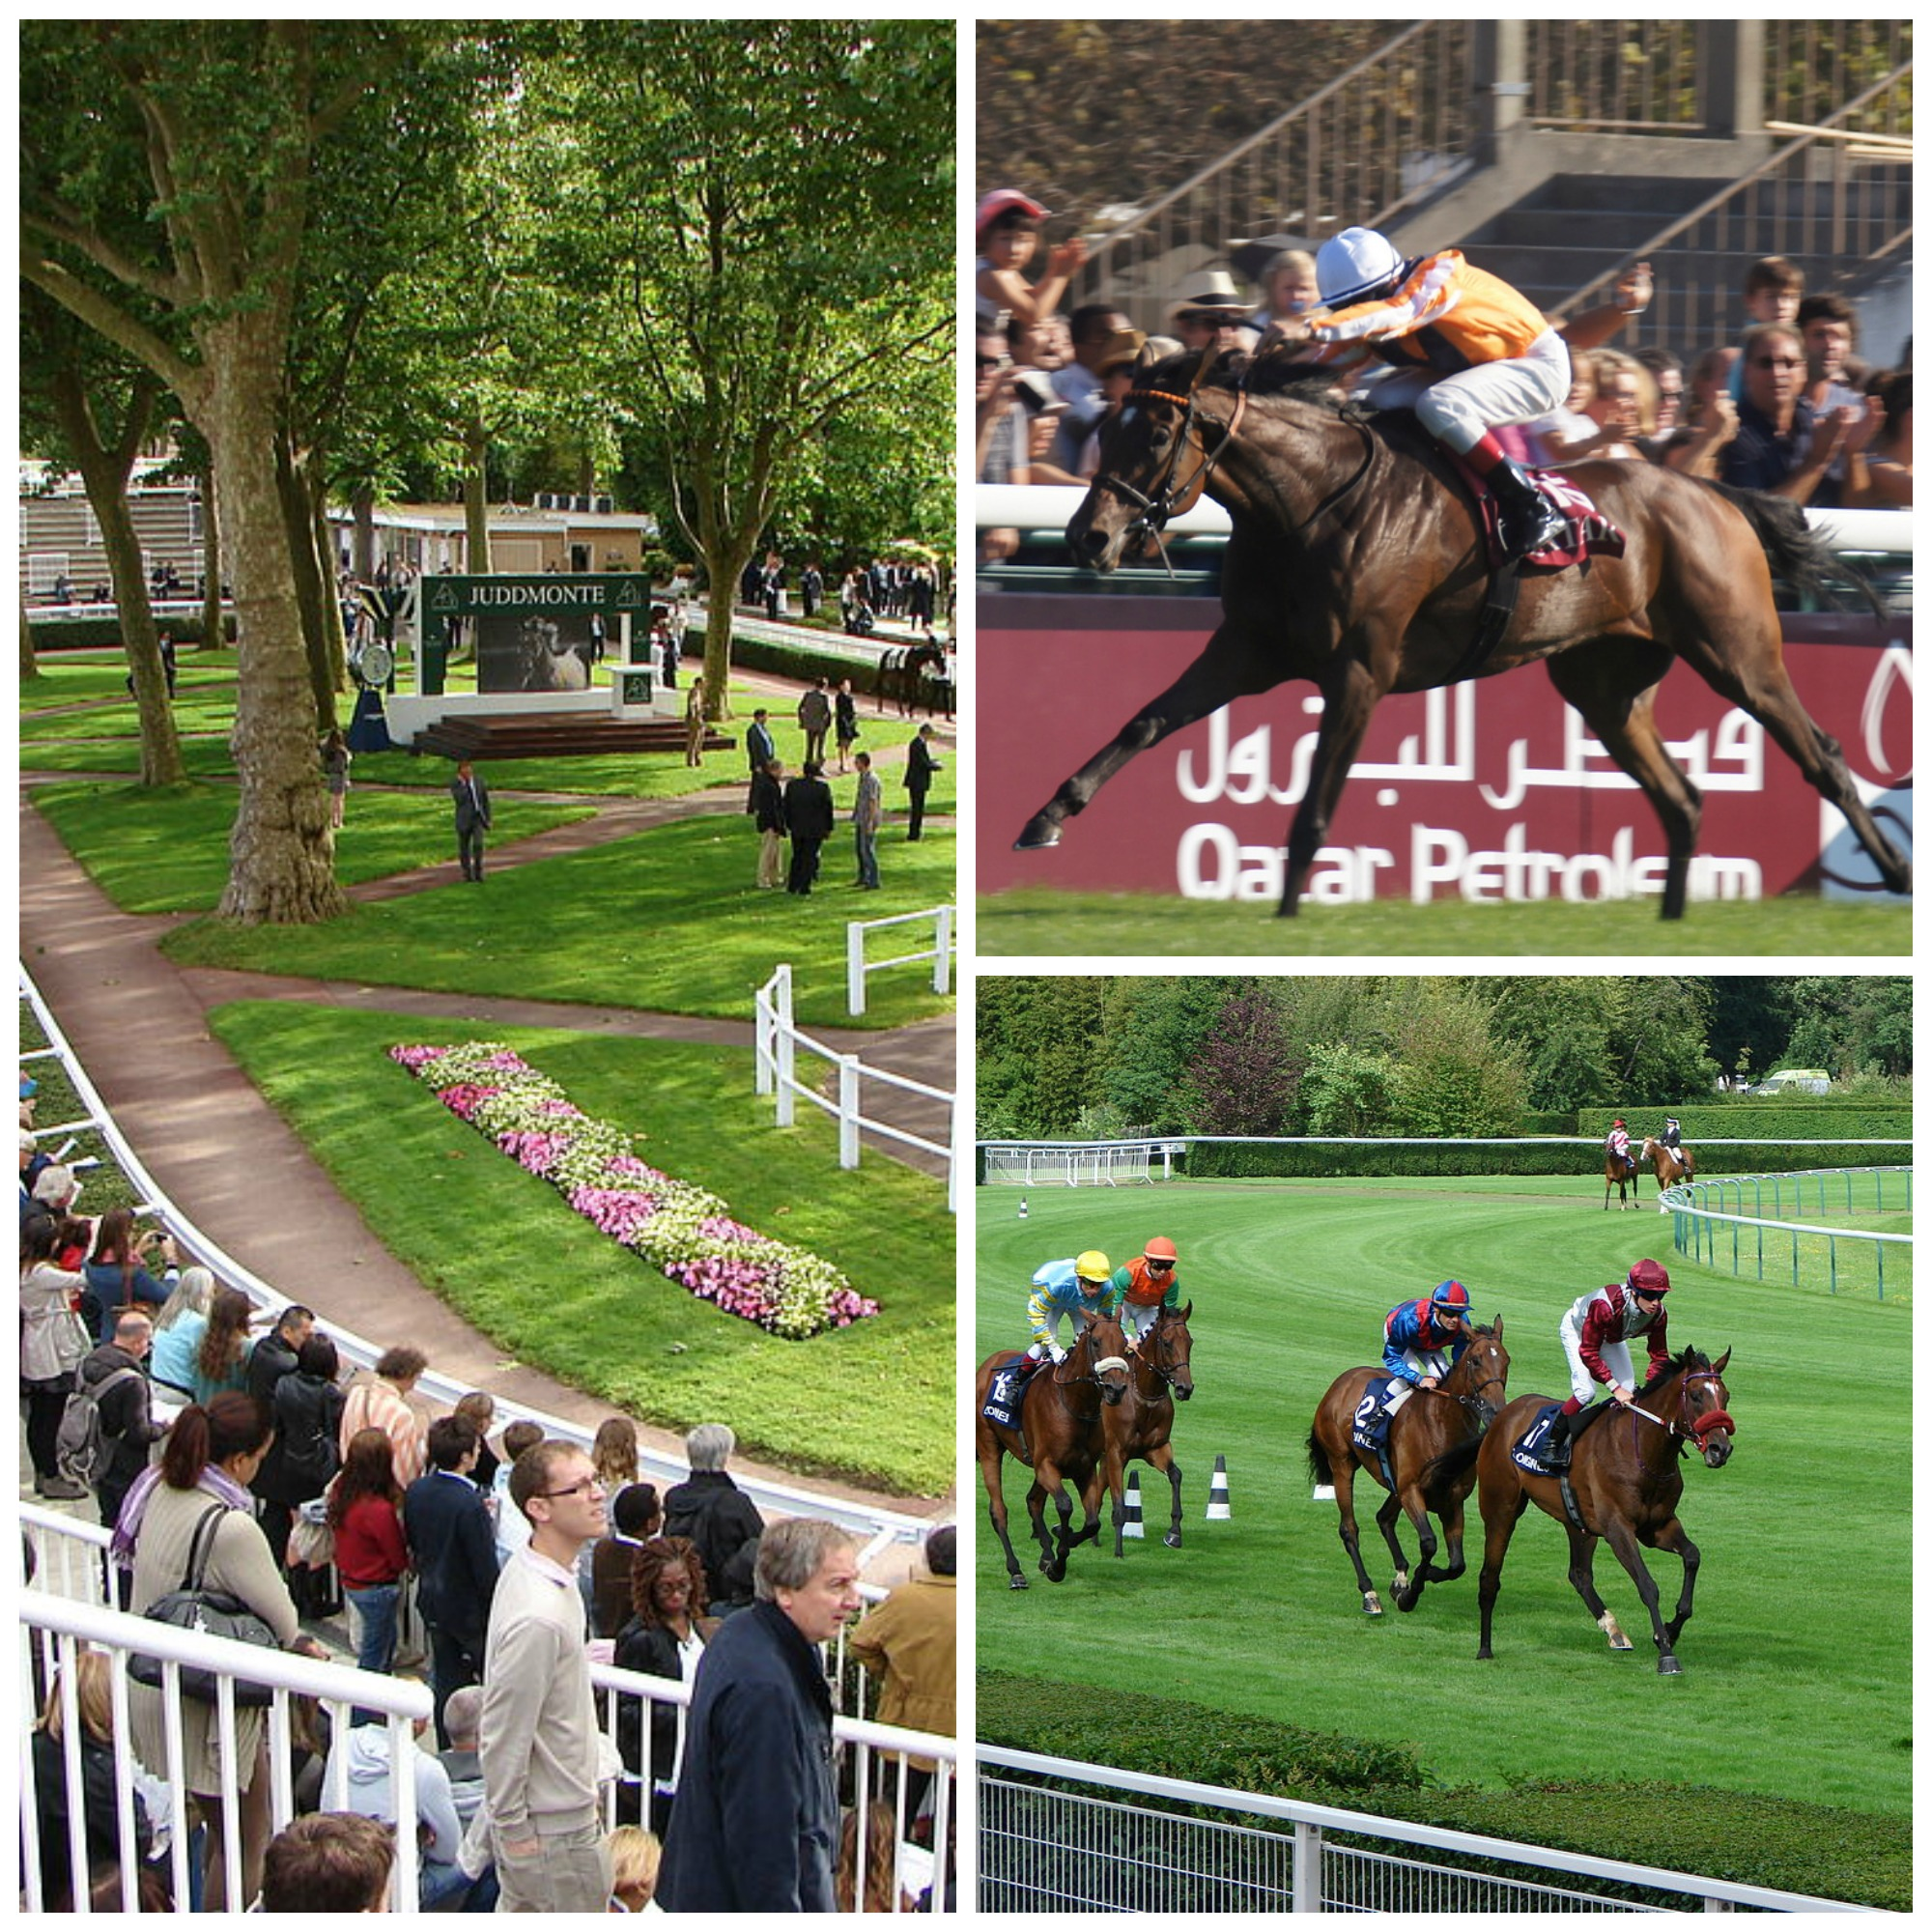 The History Of Longchamp Racecourse In 1 Minute